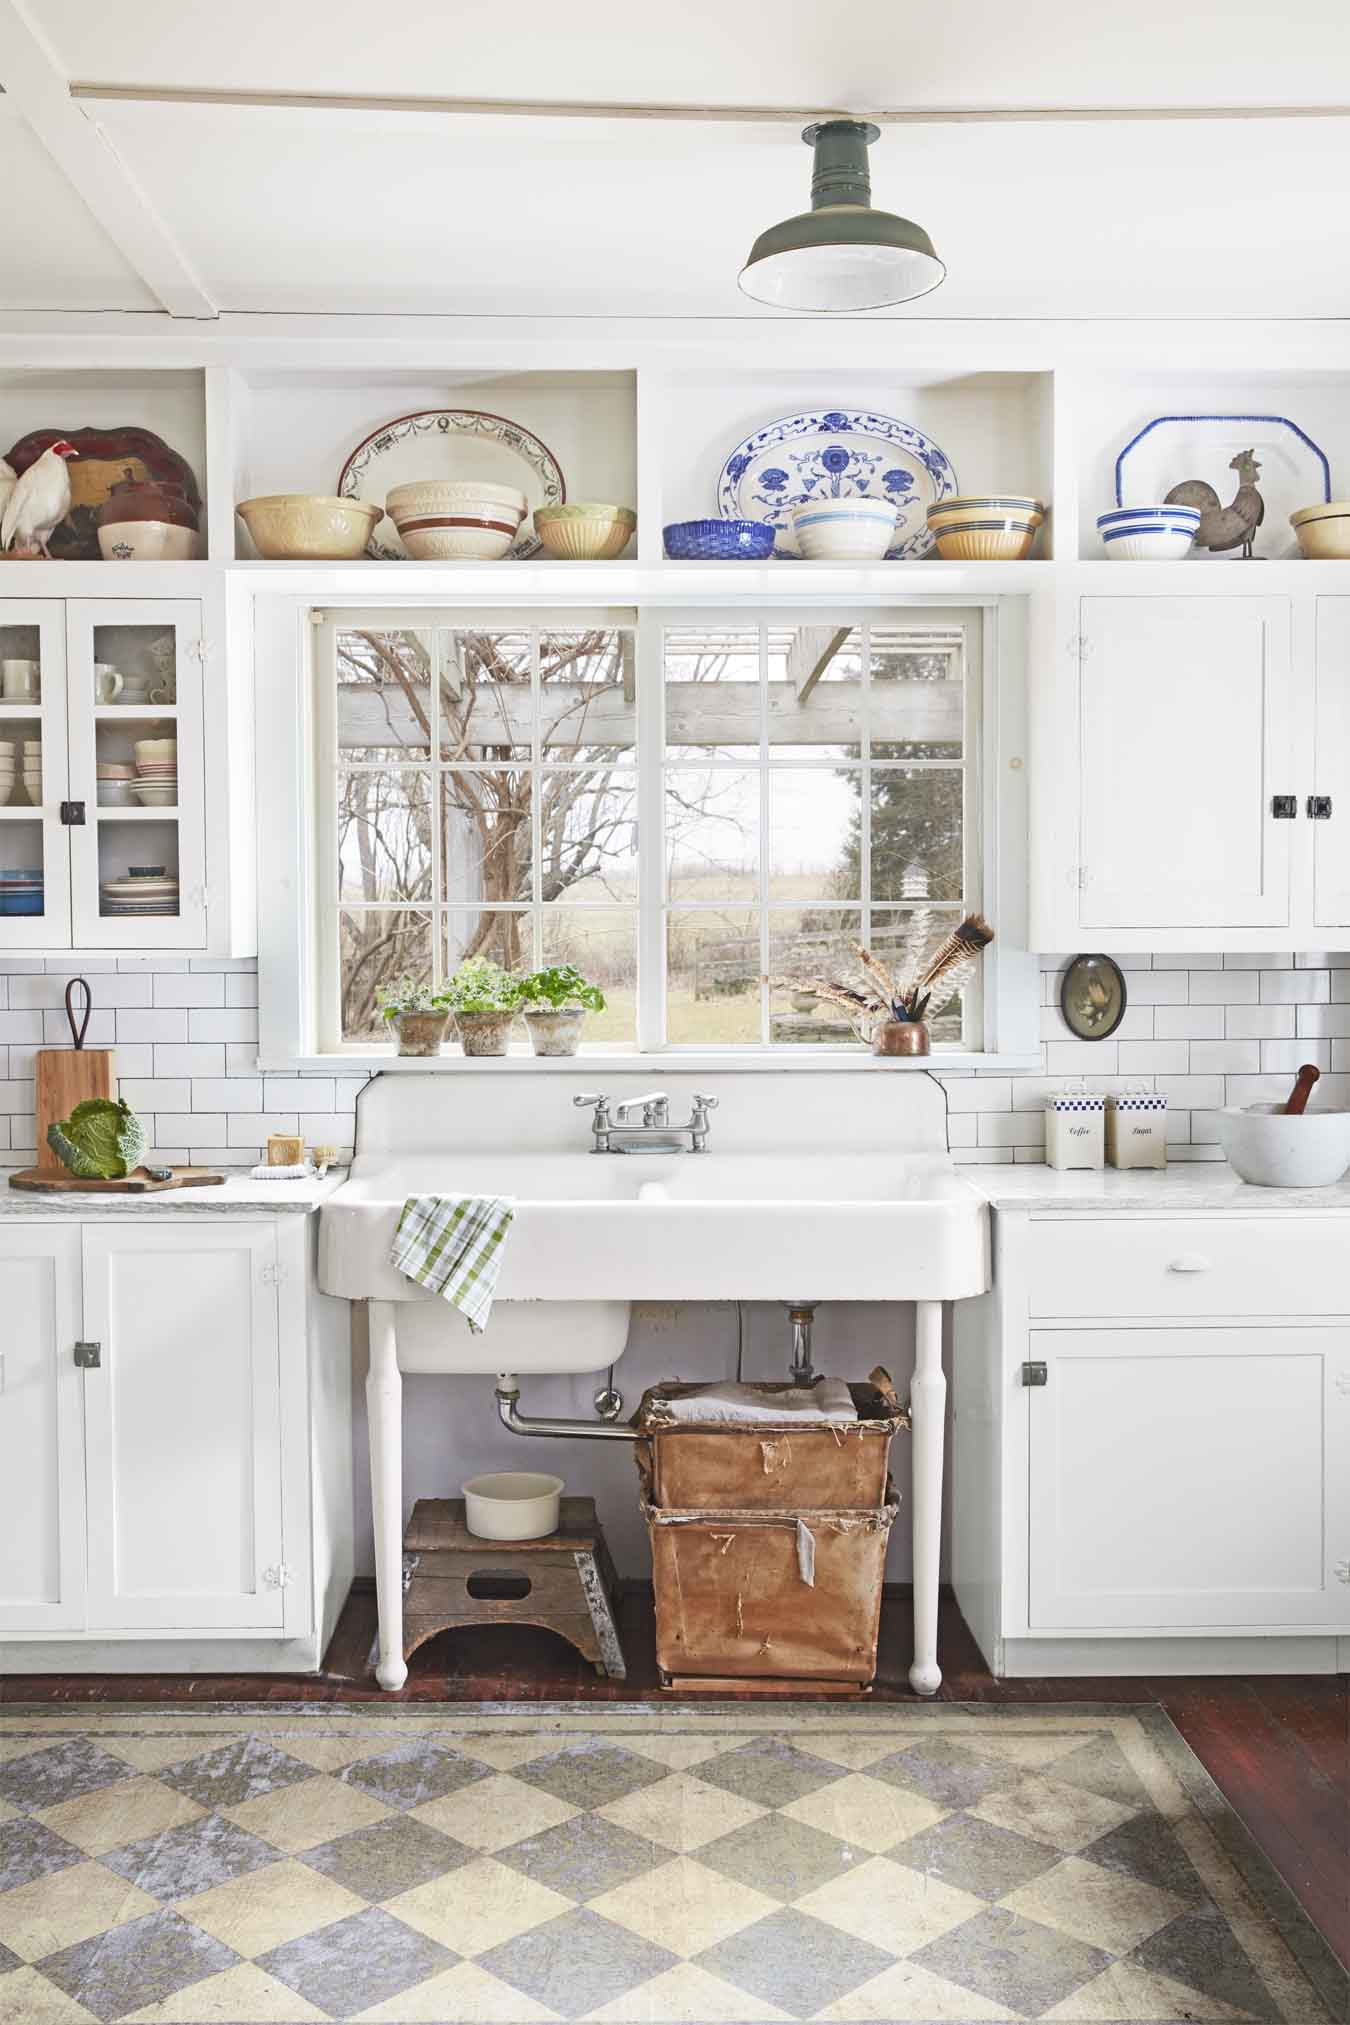 20 vintage kitchen decorating ideas design inspiration for Decor for kitchen